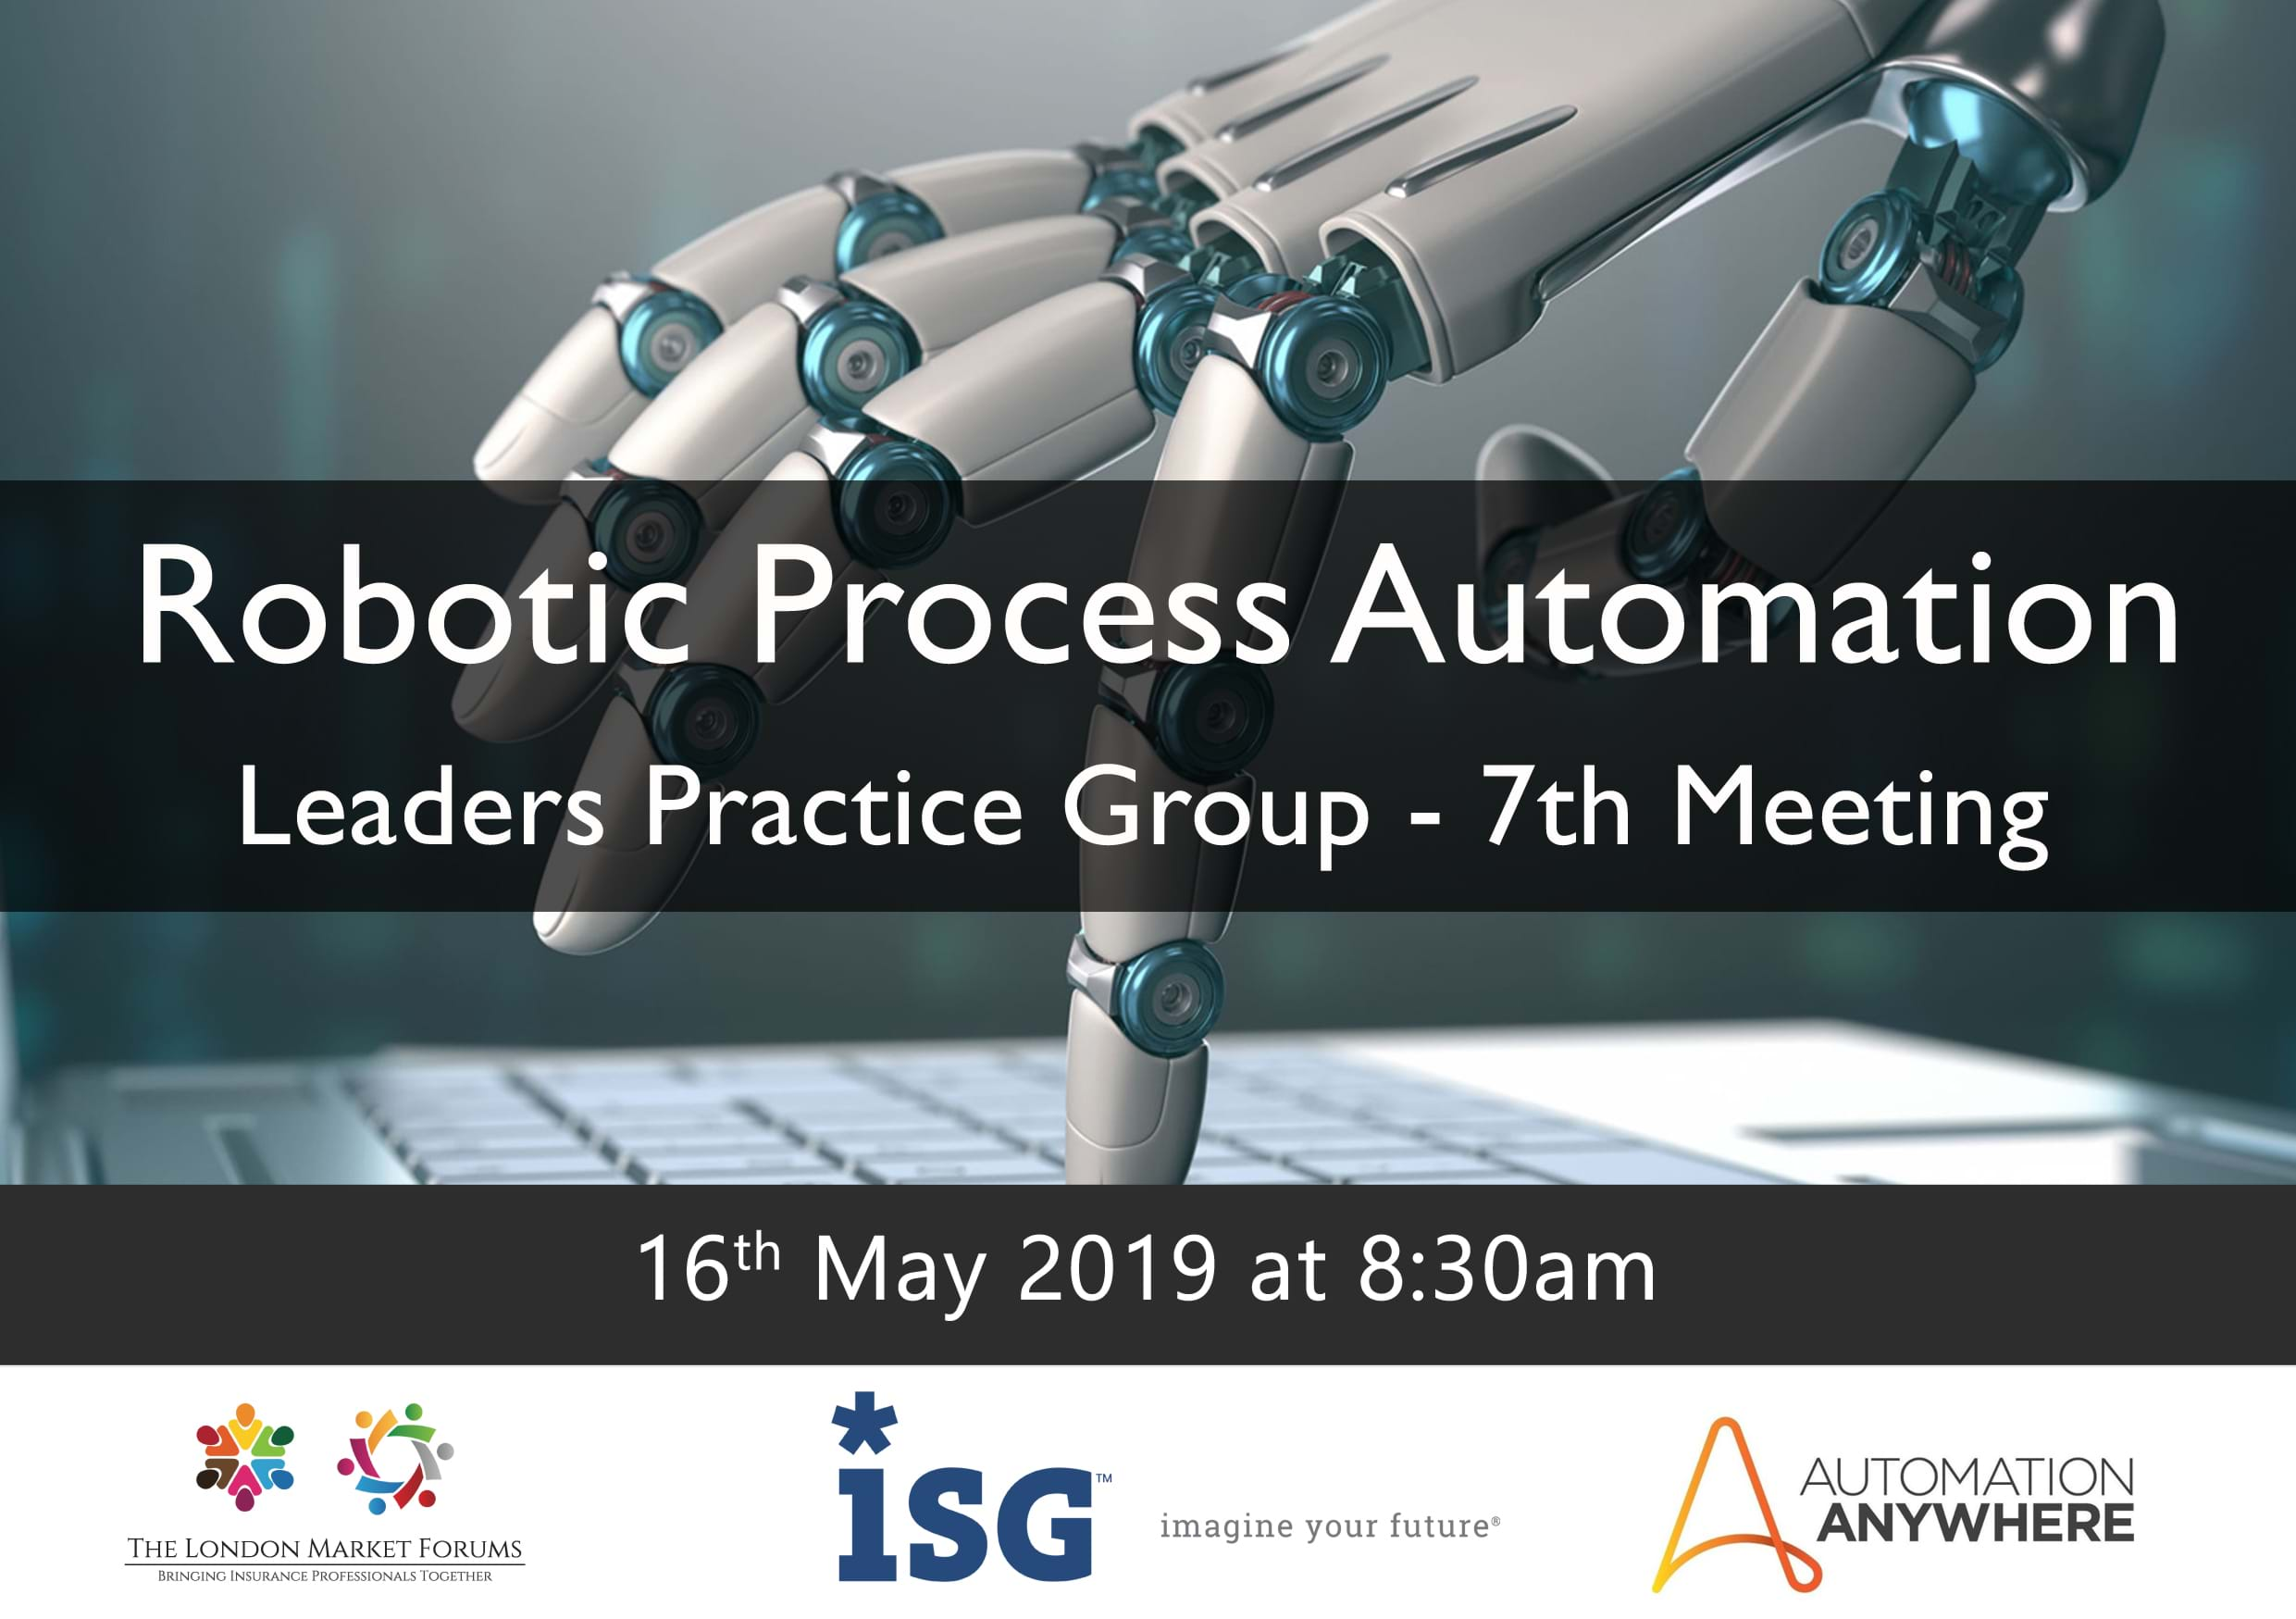 Robotic Process Automation Leaders Practice Group - 16th May 2019